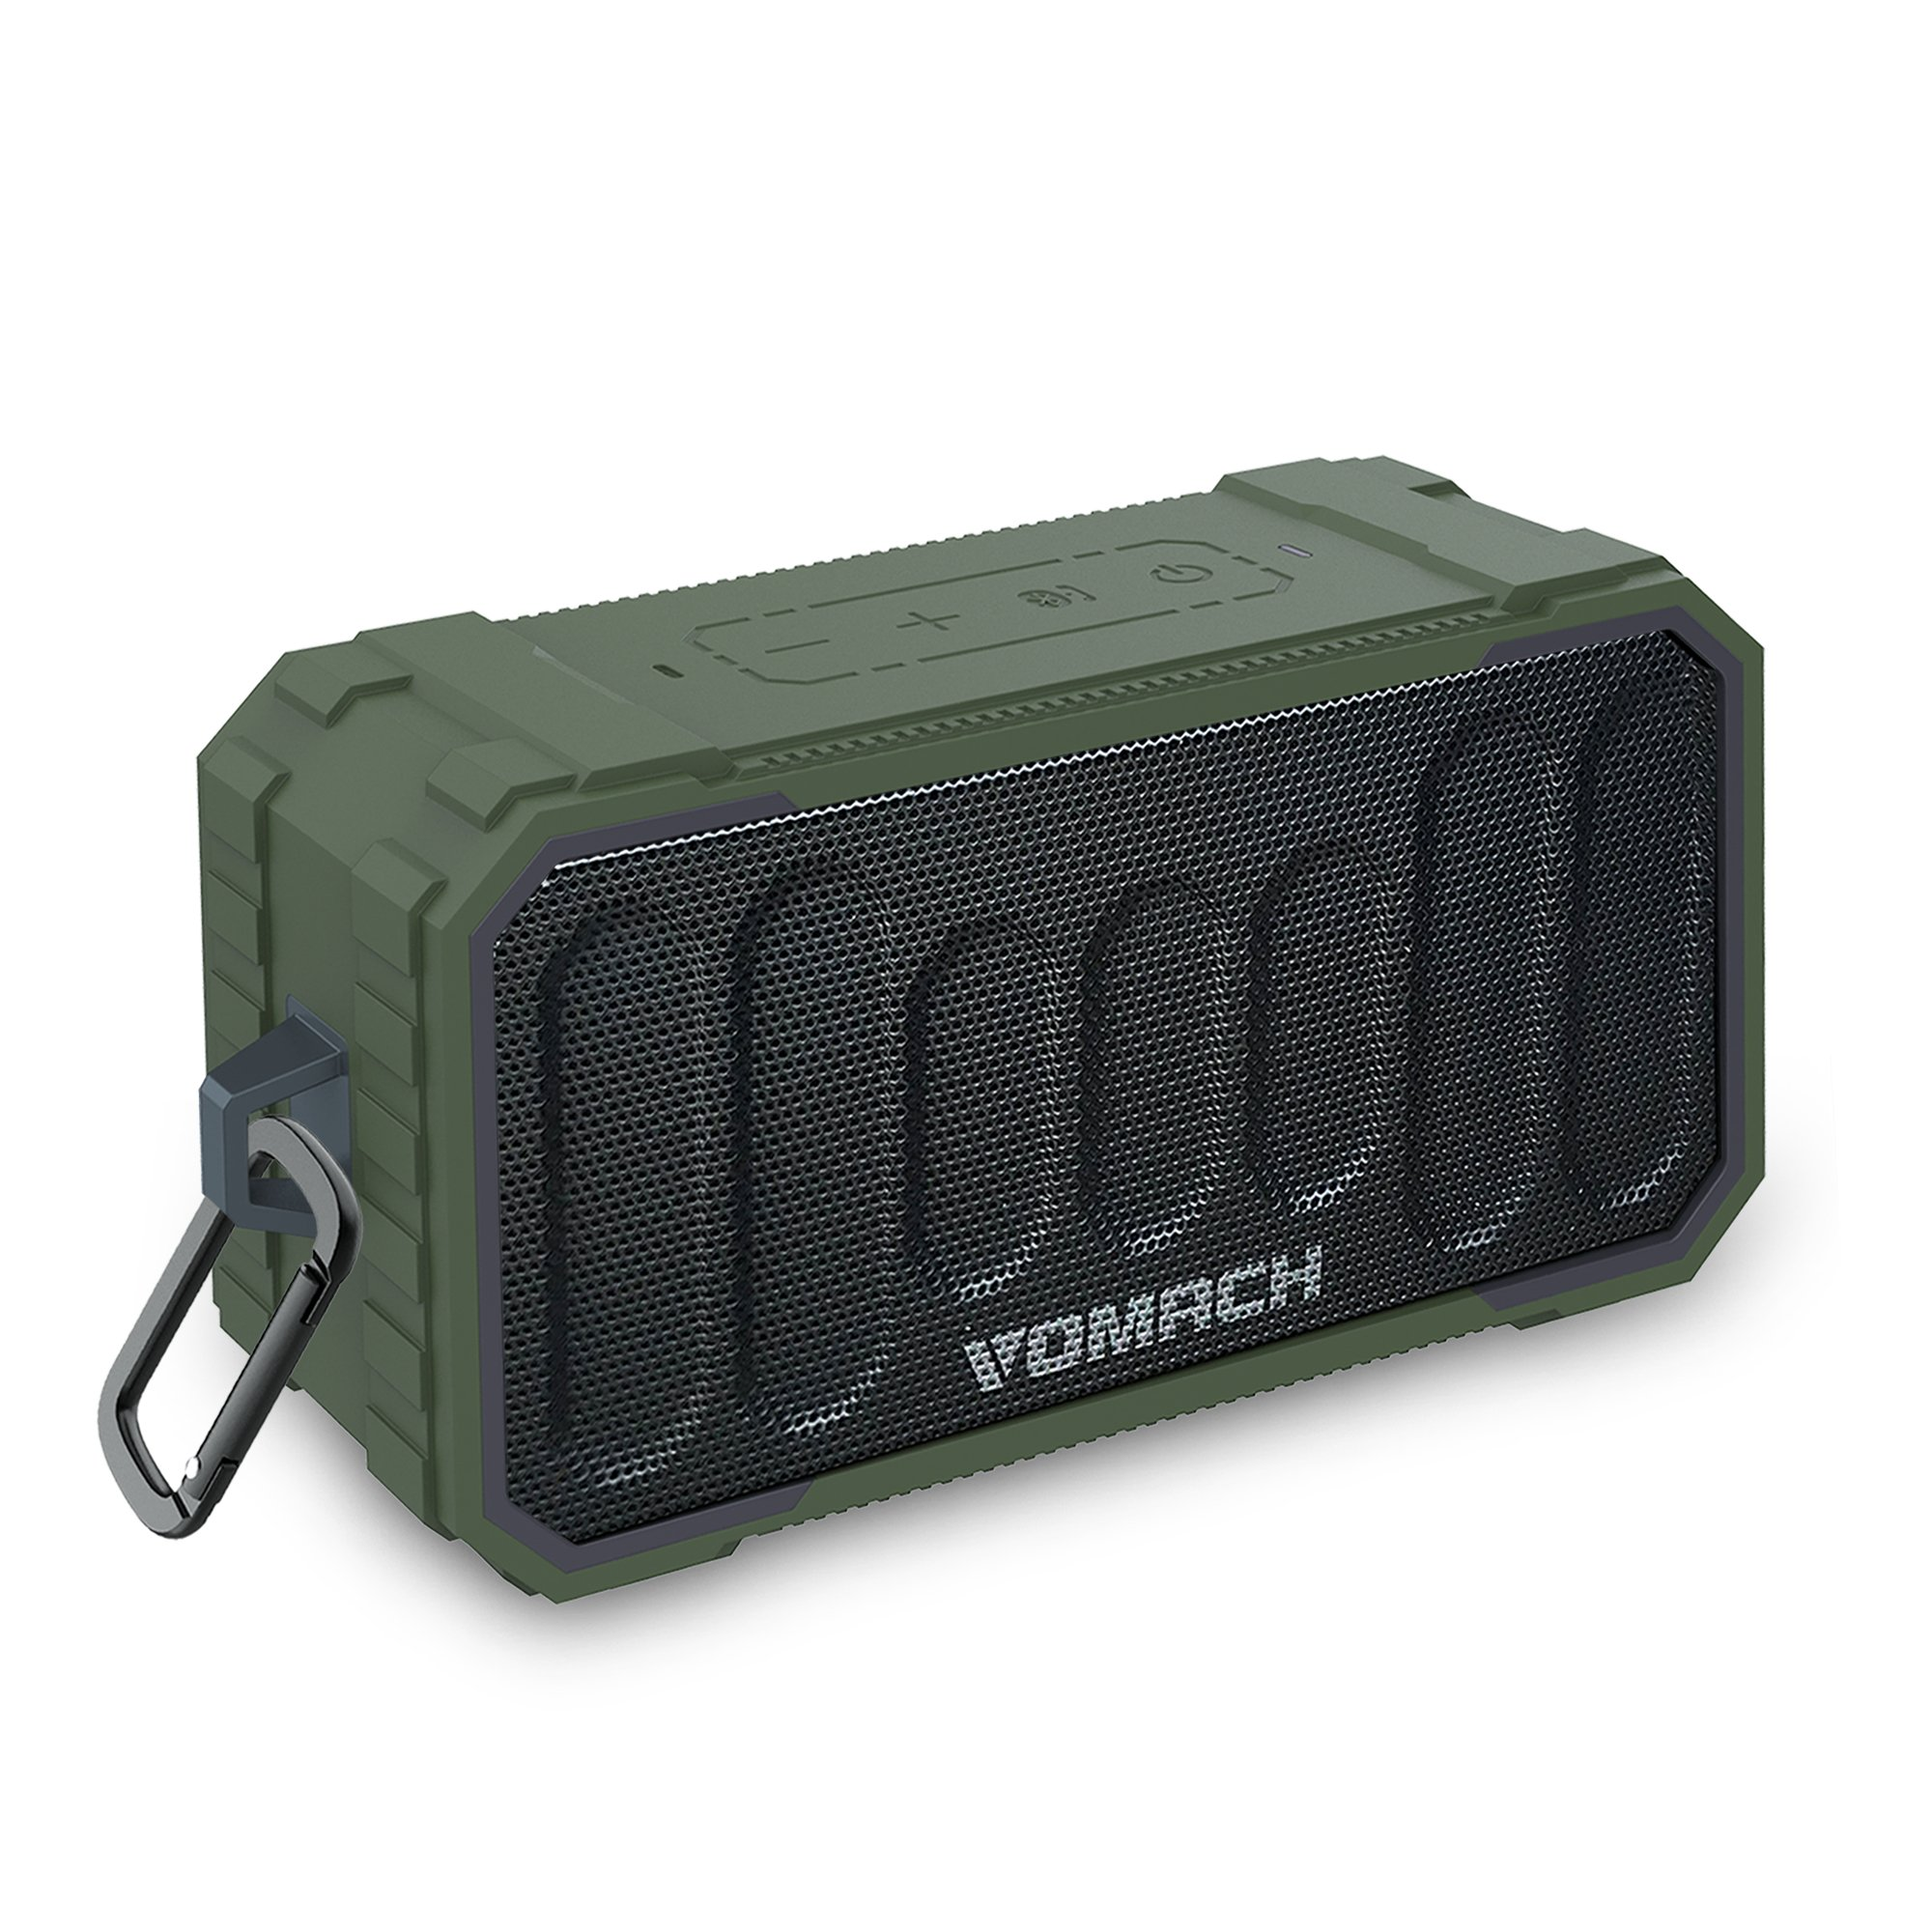 Vomach Bluetooth Speakers - IPX6 Water-Resistant, Drop-Resistant, Dust-Resistant, Bluetooth 4.2 Portable Outdoor Wireless Speaker with Deep Bass Stereo Sound for Party, Travel, Beach, Pool